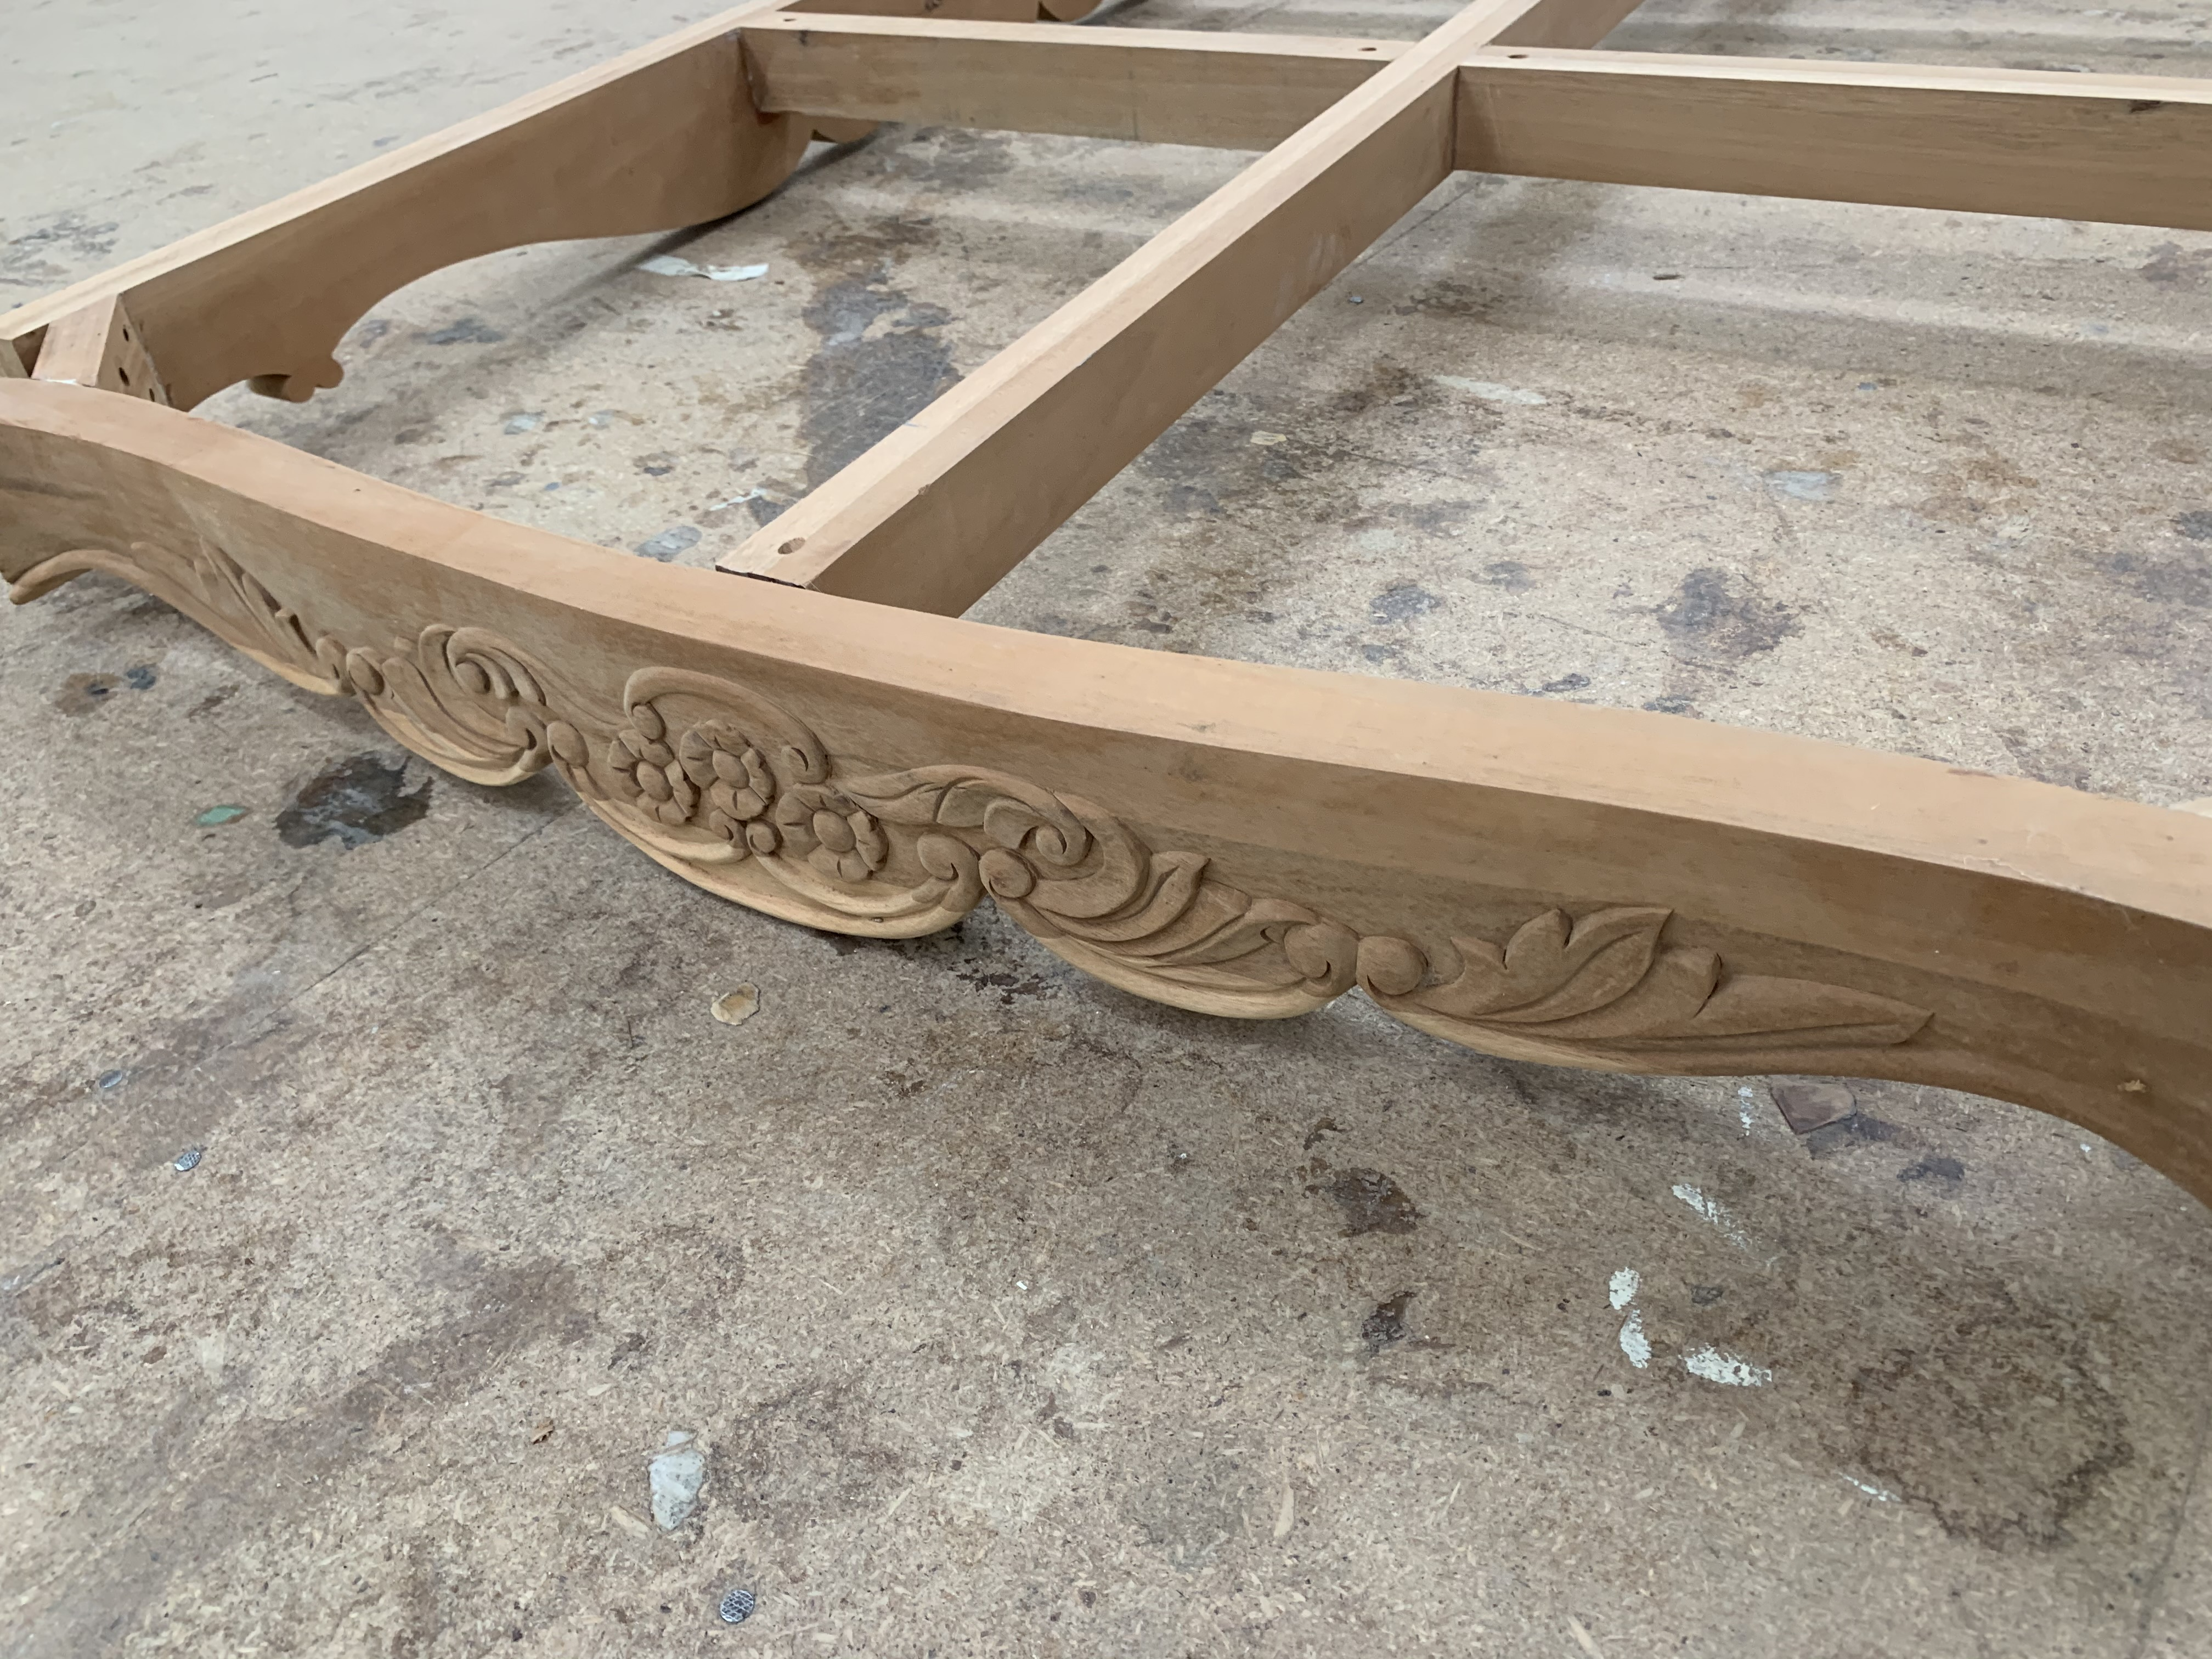 Lot 54 - Large decorative carved Coffee Table Frame and Legs, approx 6' x 4', requires finishing/polishing (